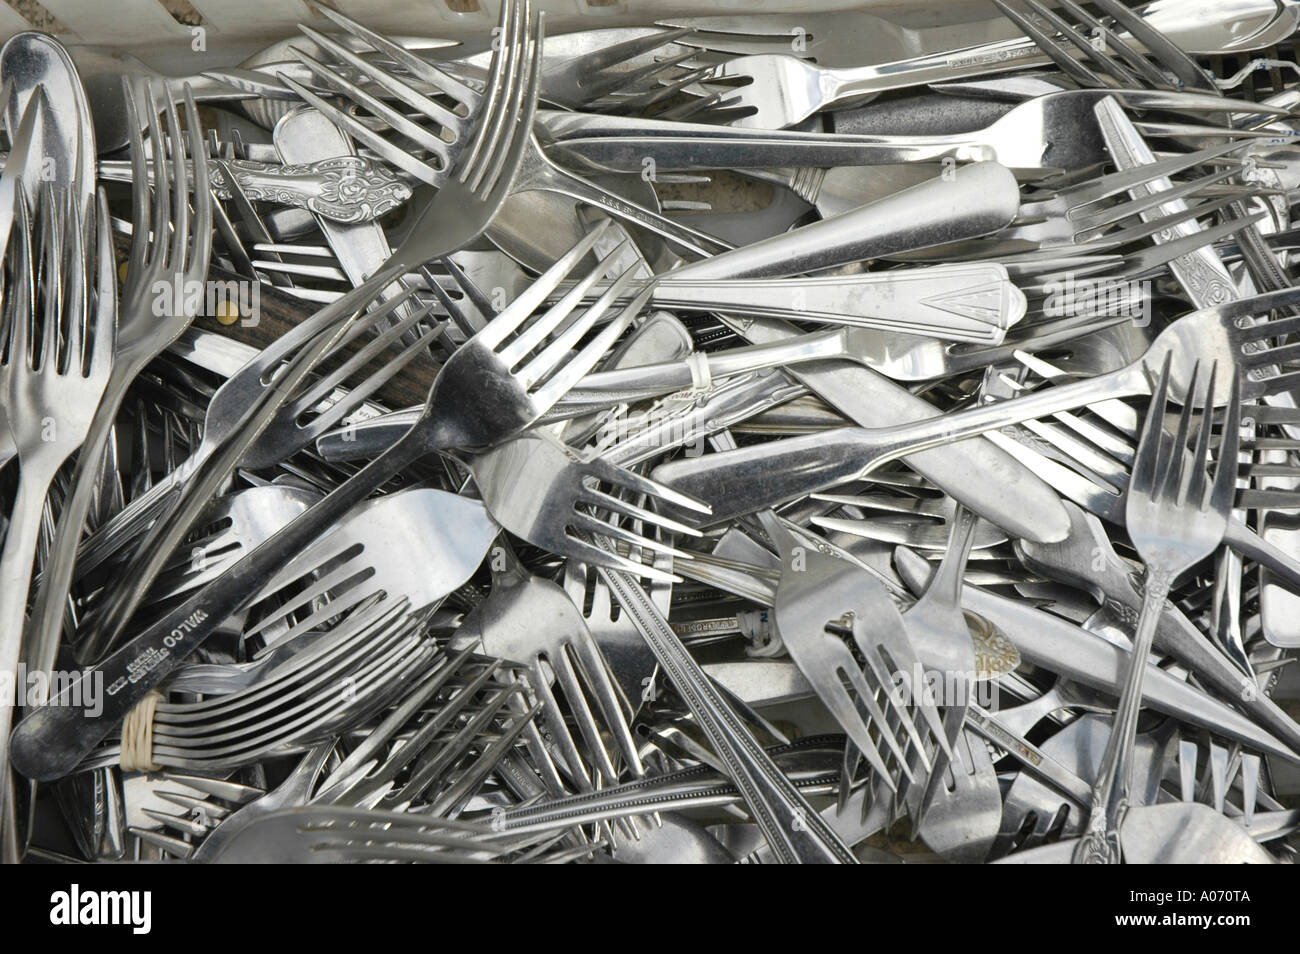 Used Flatware For Sale Used Silverware And Flatware For Sale At Flea Market And Tag Sale